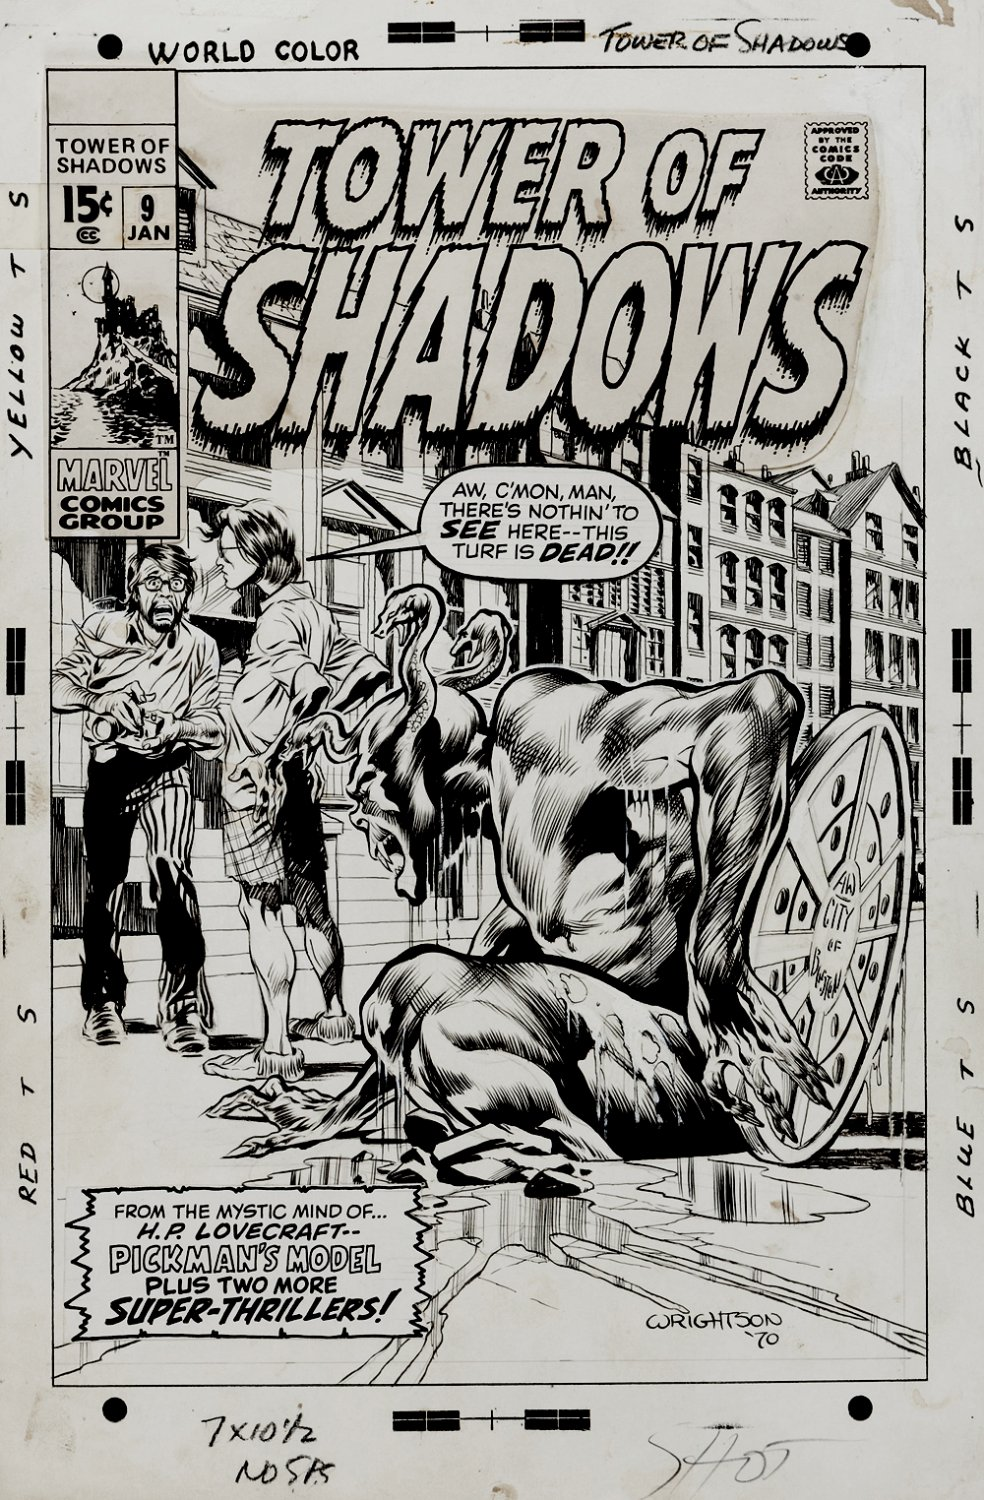 Tower of Shadows #9 Cover (FIRST TIME WRIGHTSON DREW HIMSELF ON A HORROR COVER!) 1970